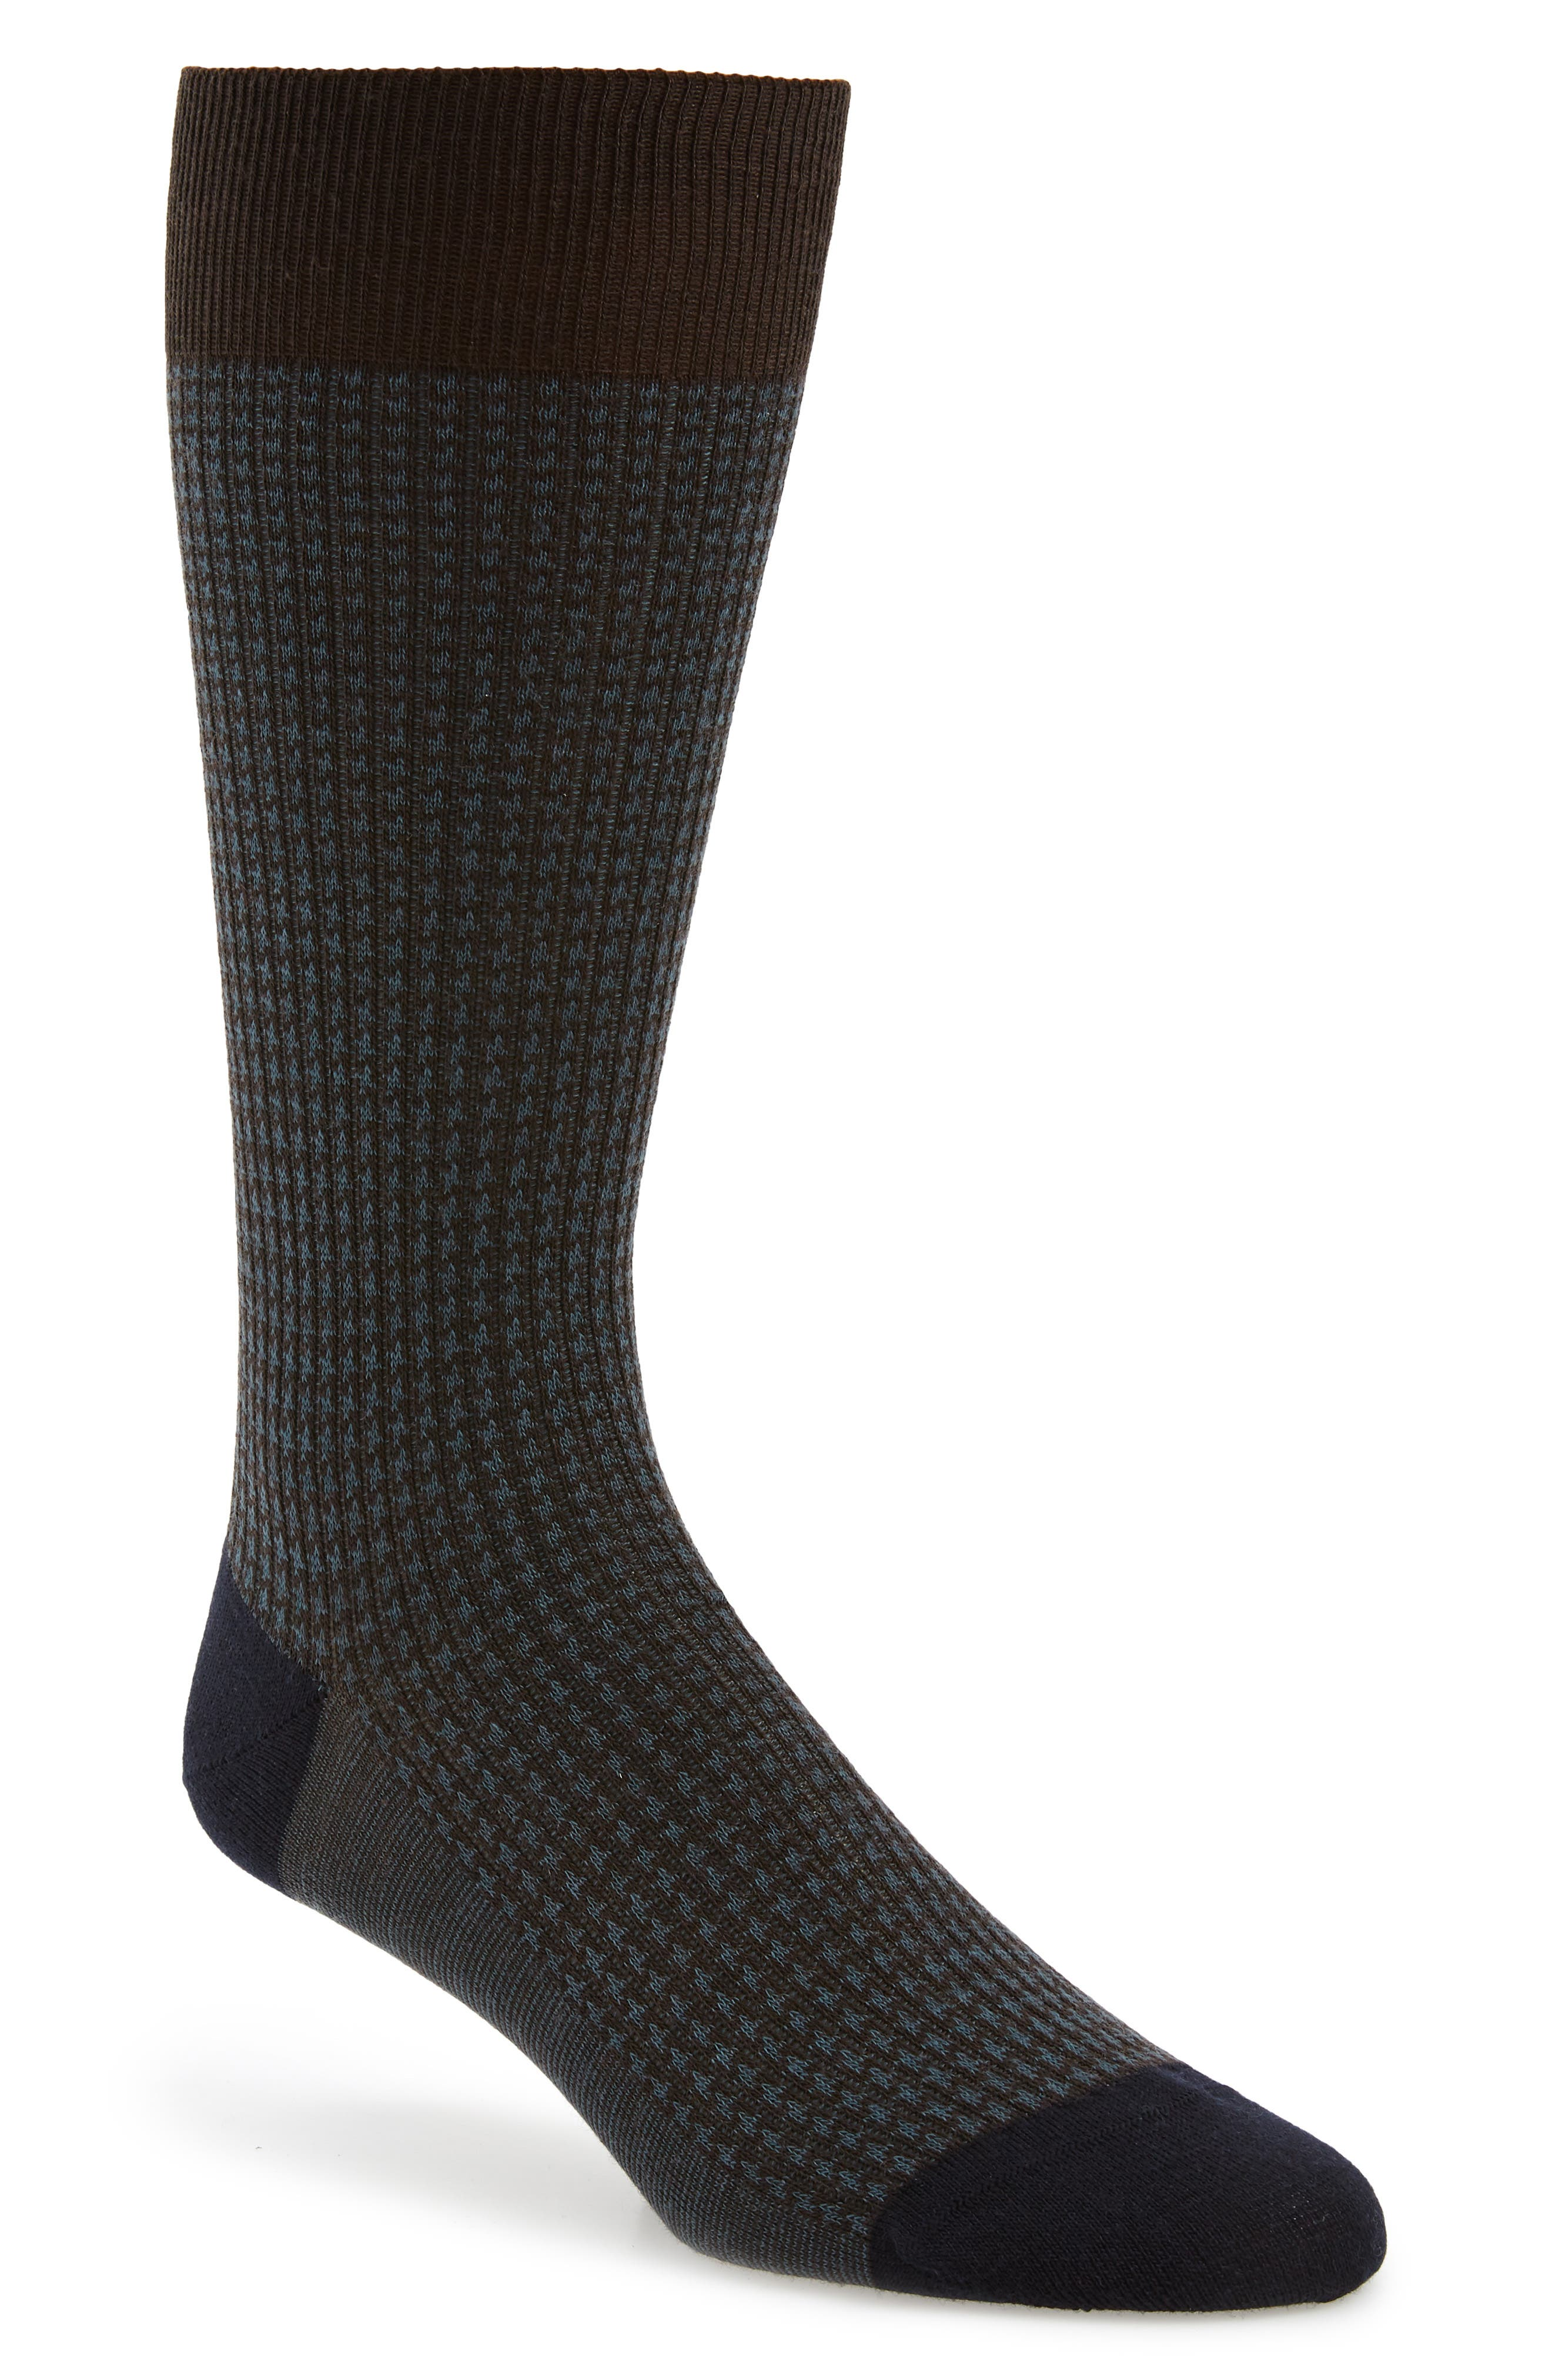 Houndstooth Wool Blend Socks,                             Main thumbnail 1, color,                             CHOCOLATE